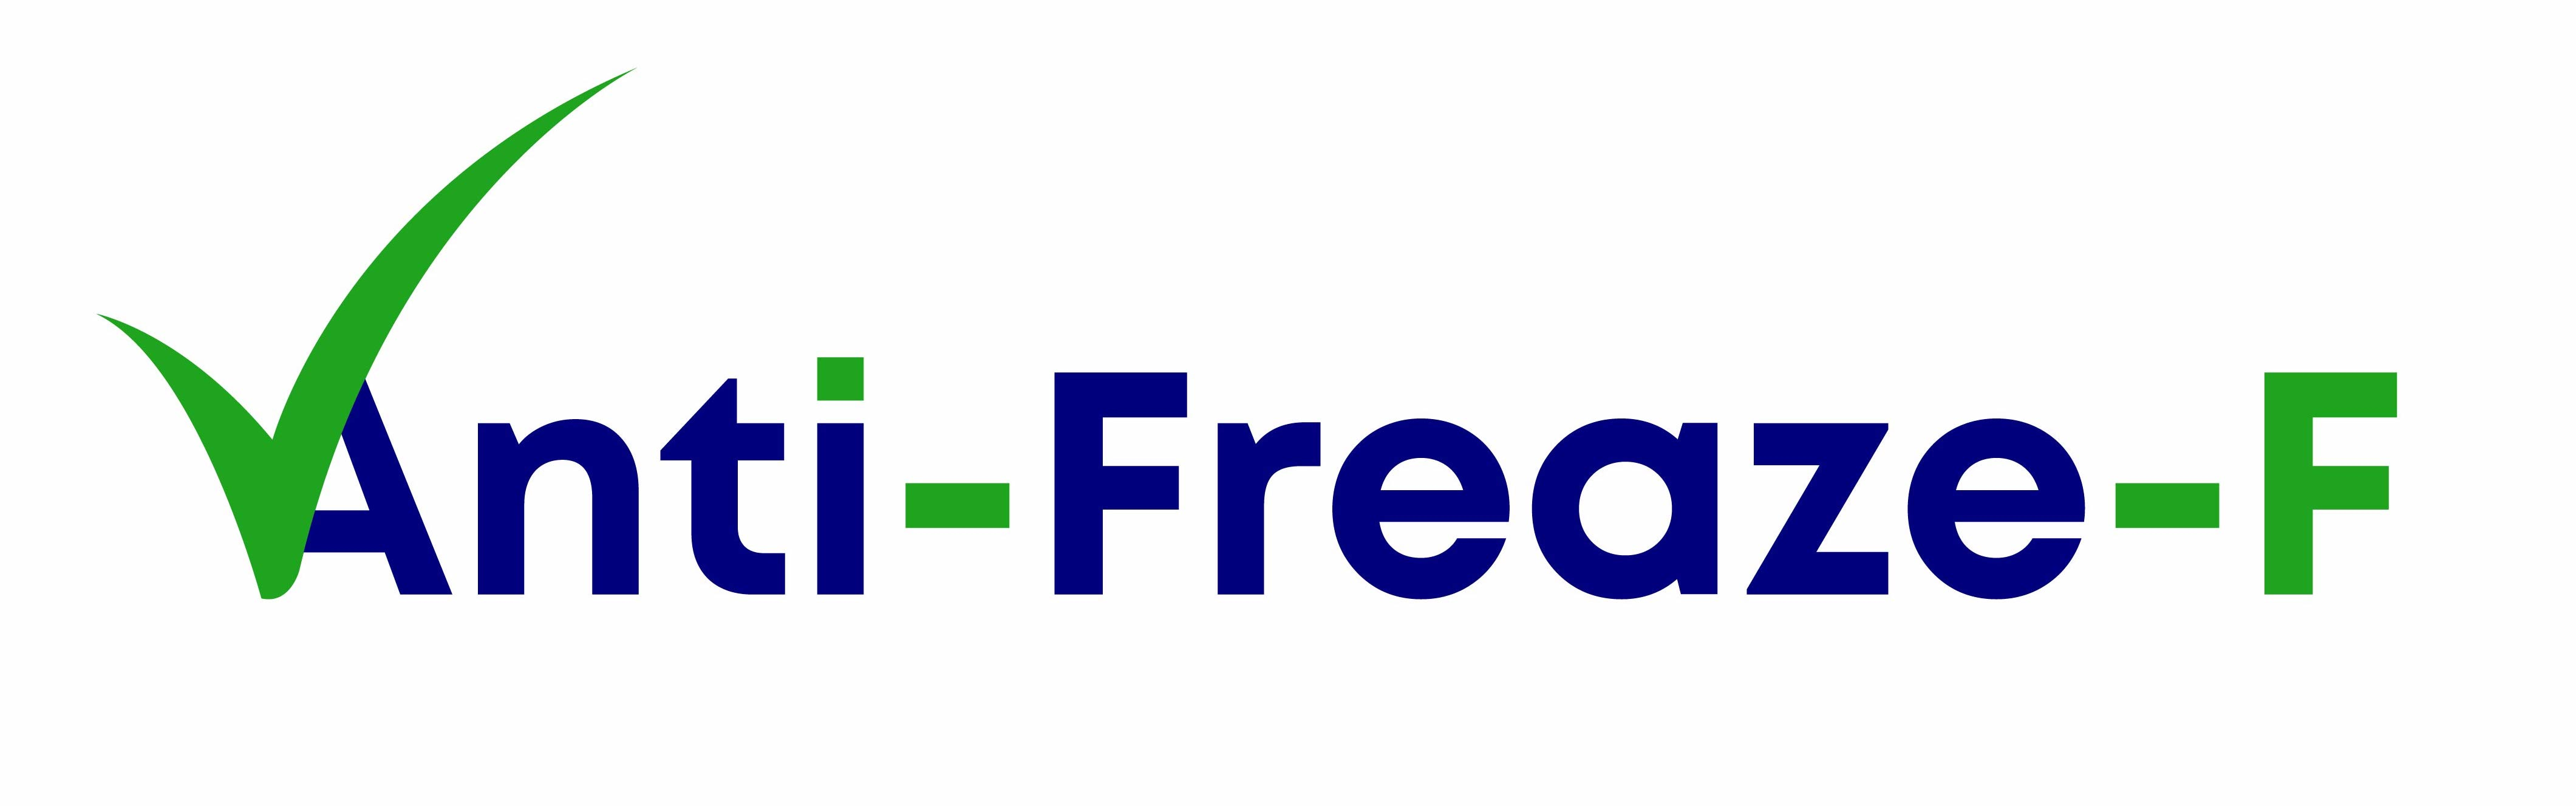 Blue and Green Text writing the word Anti-Freaze-F